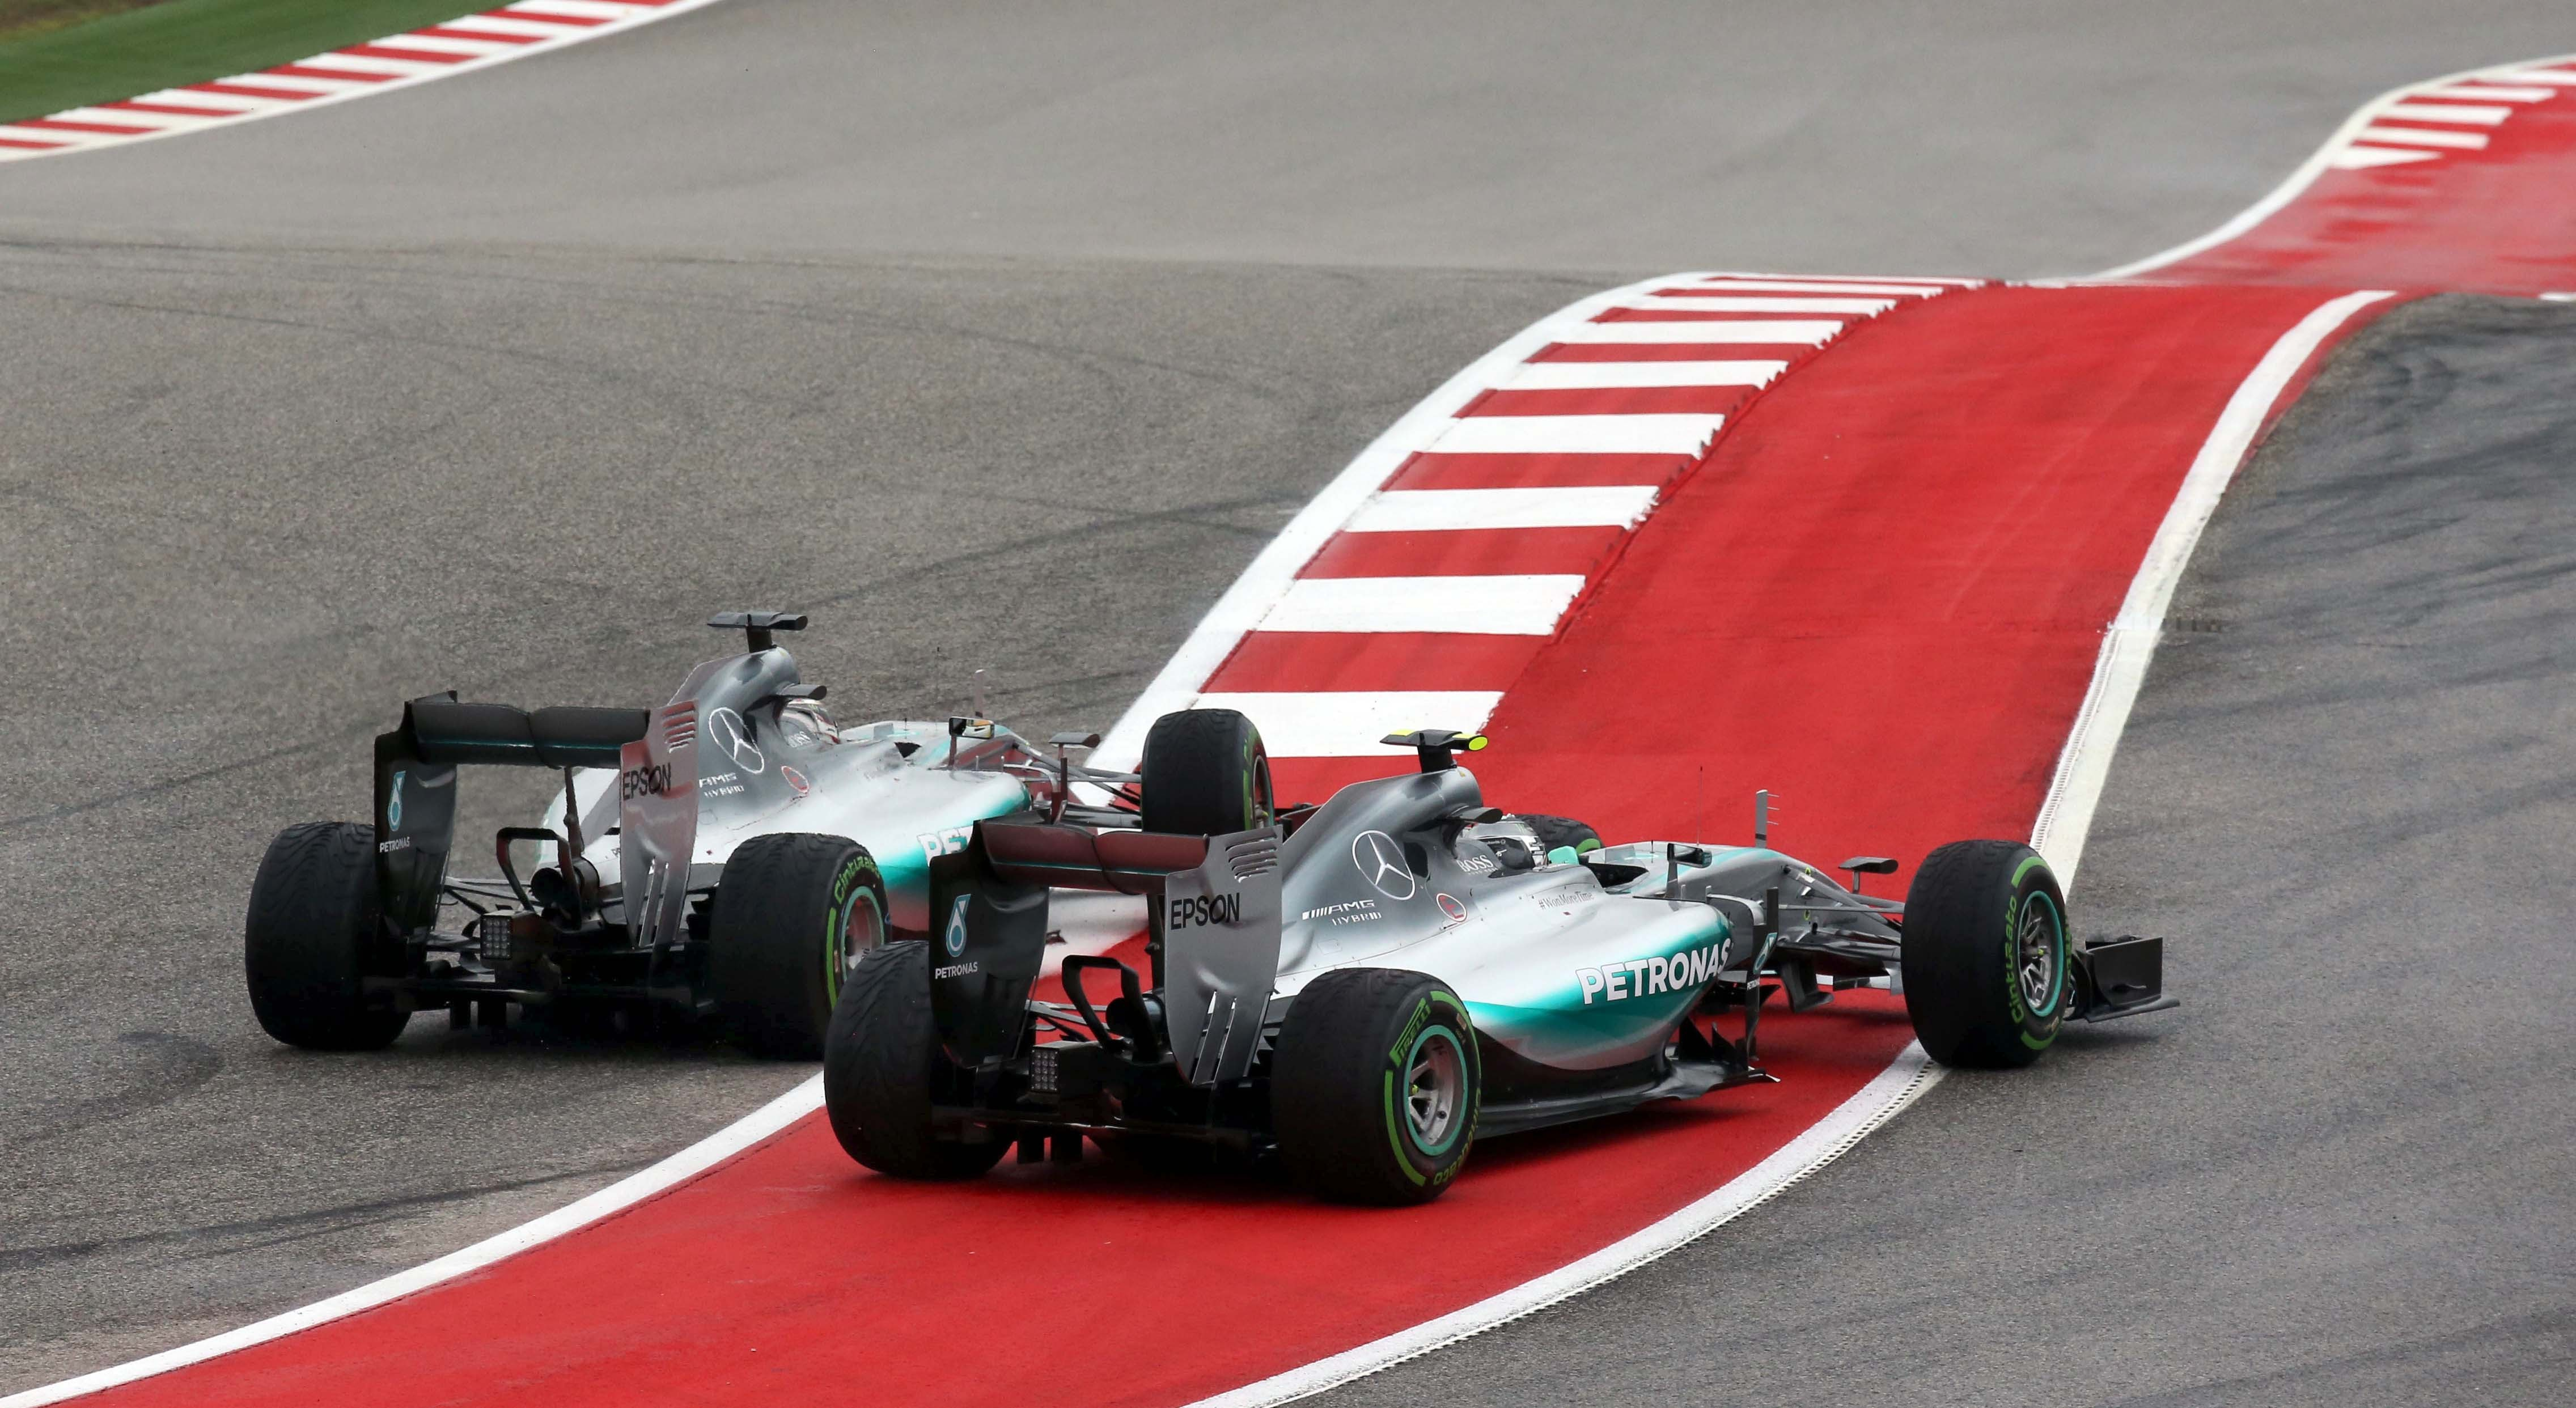 Lewis Hamilton (left) pushes Nico Rosberg wide on the first corner